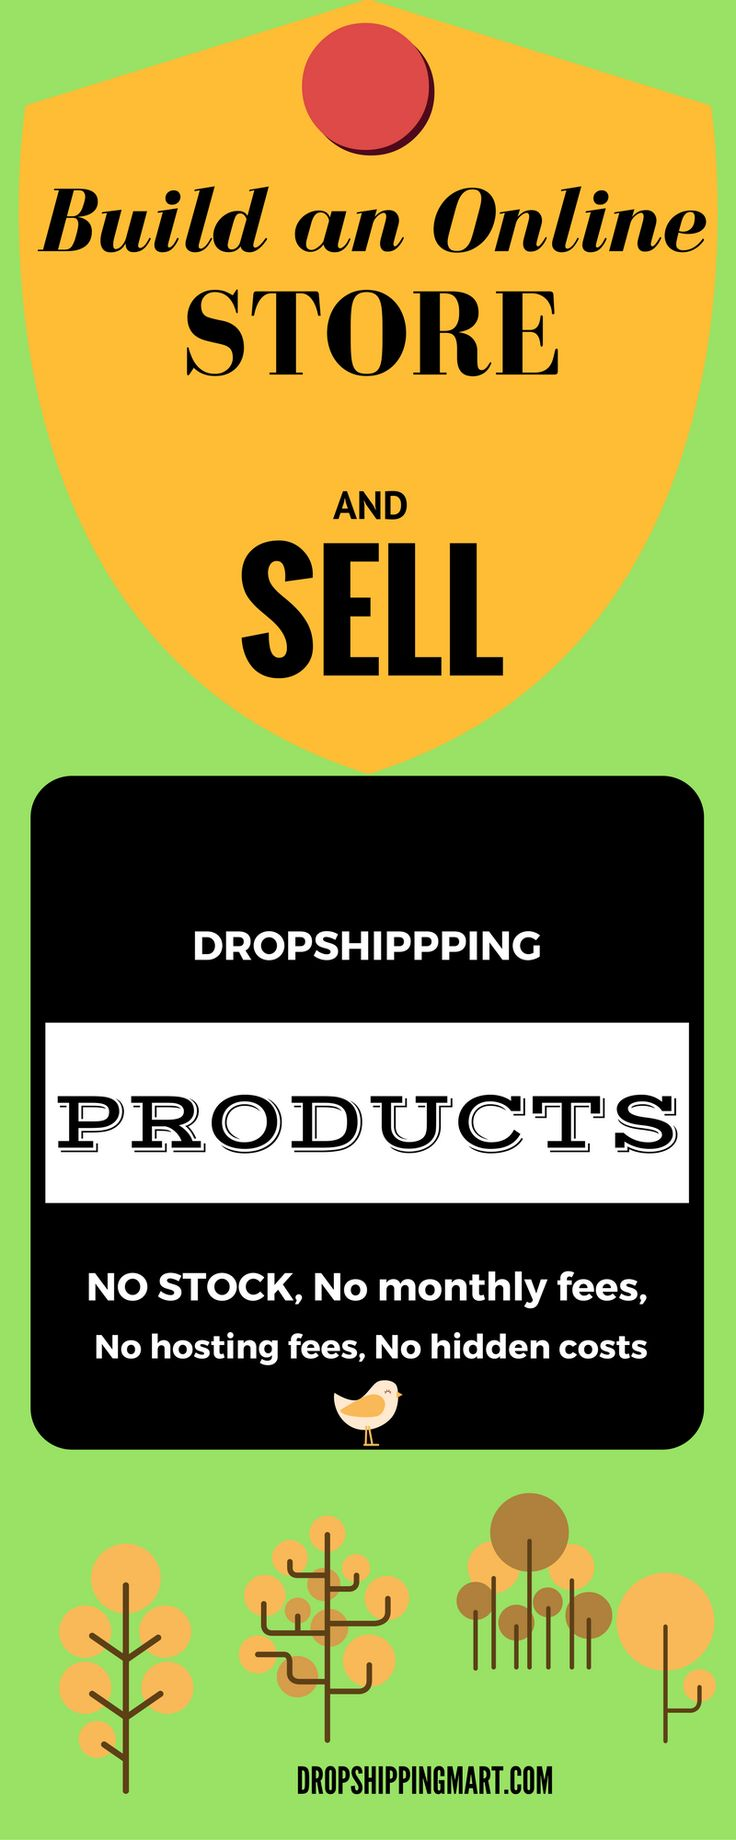 High Quality Essentially, You Own A Site That Features Fantastic Products At Amazing  Prices. However,